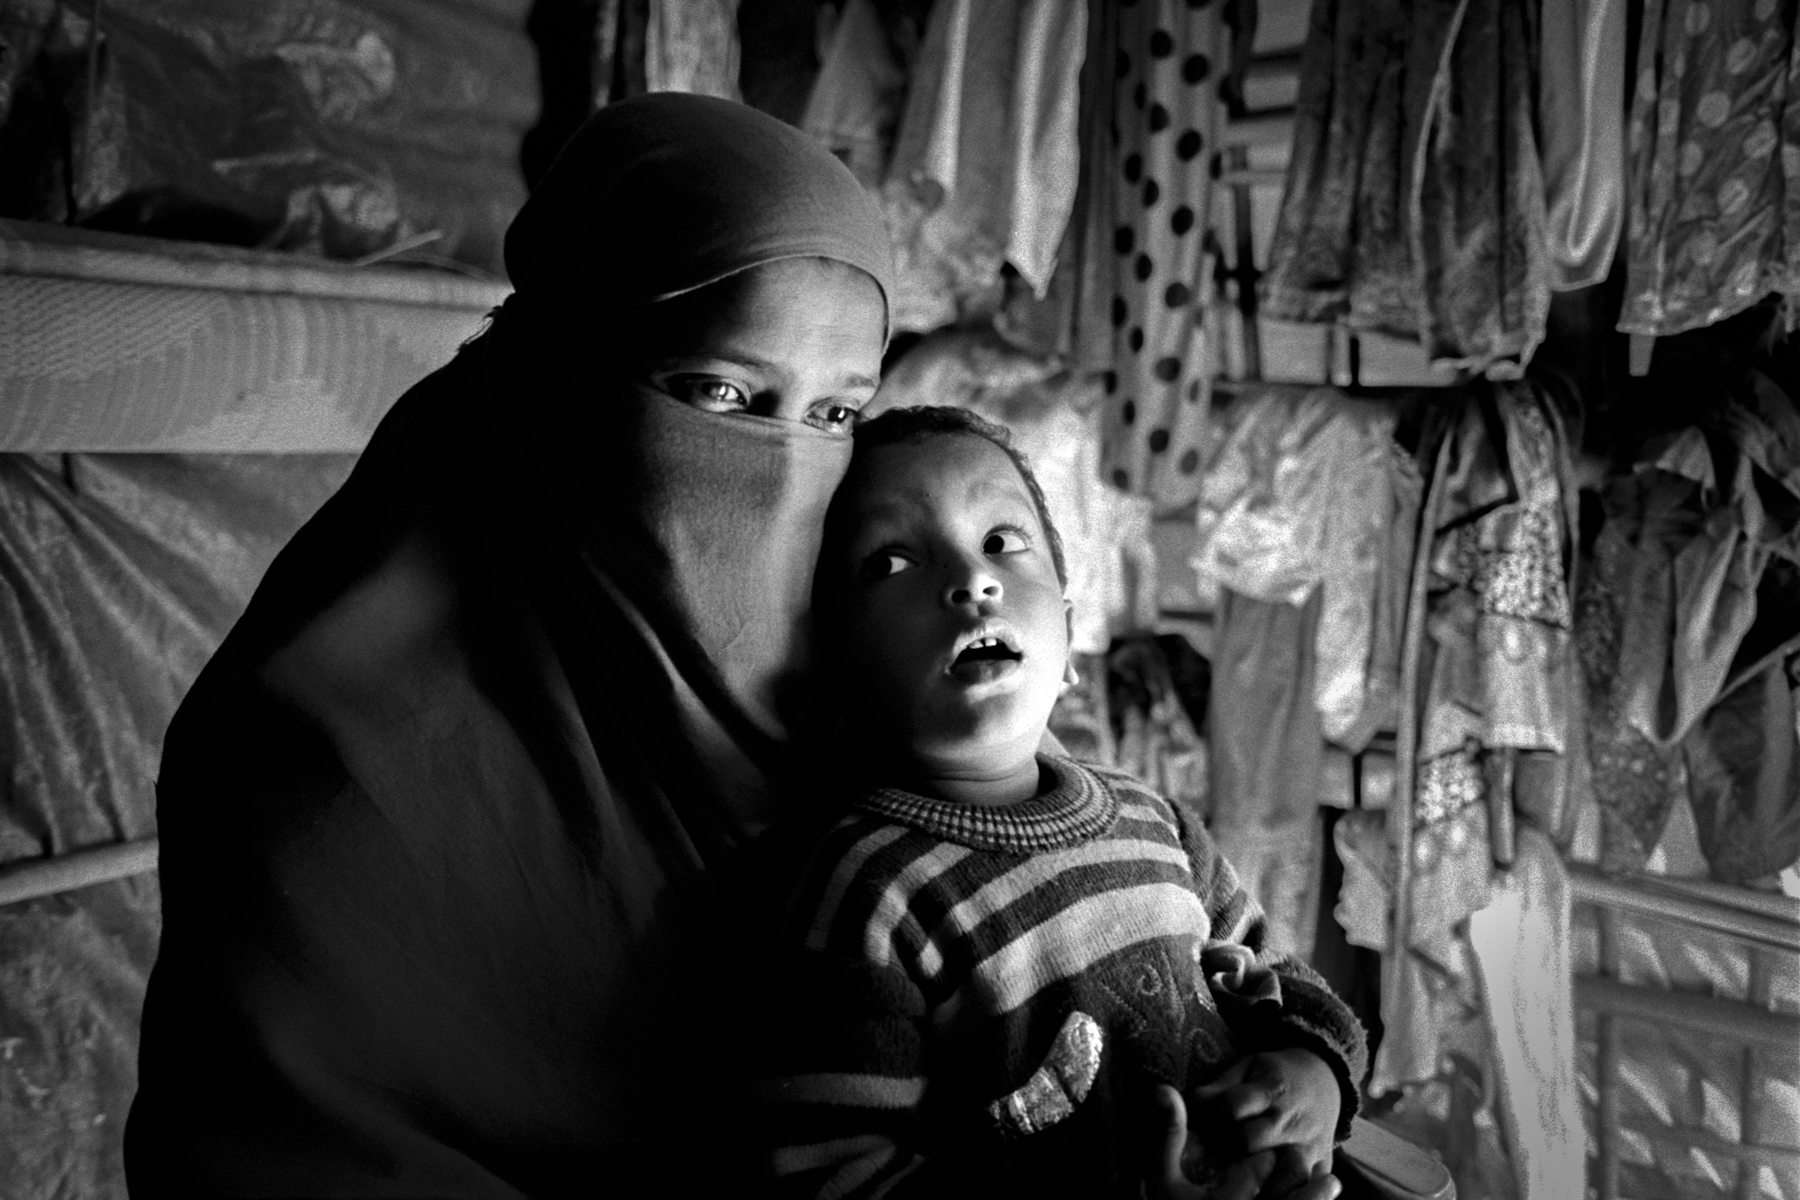 20 year old Fatema Begum holds her son Mehadi Hassan in a makeshift hut at Kutupalong refugee camp.  Her village Bagkunah in Maungdaw was attacked by Myanmar's military on September 5th, 2017.  Her 3 year old son and husband were killed in front of her.  She was then taken to a military outpost with around 20 other women were they were beaten and gang raped for a day.  Fatema was one of 8 of the women that managed to escape.